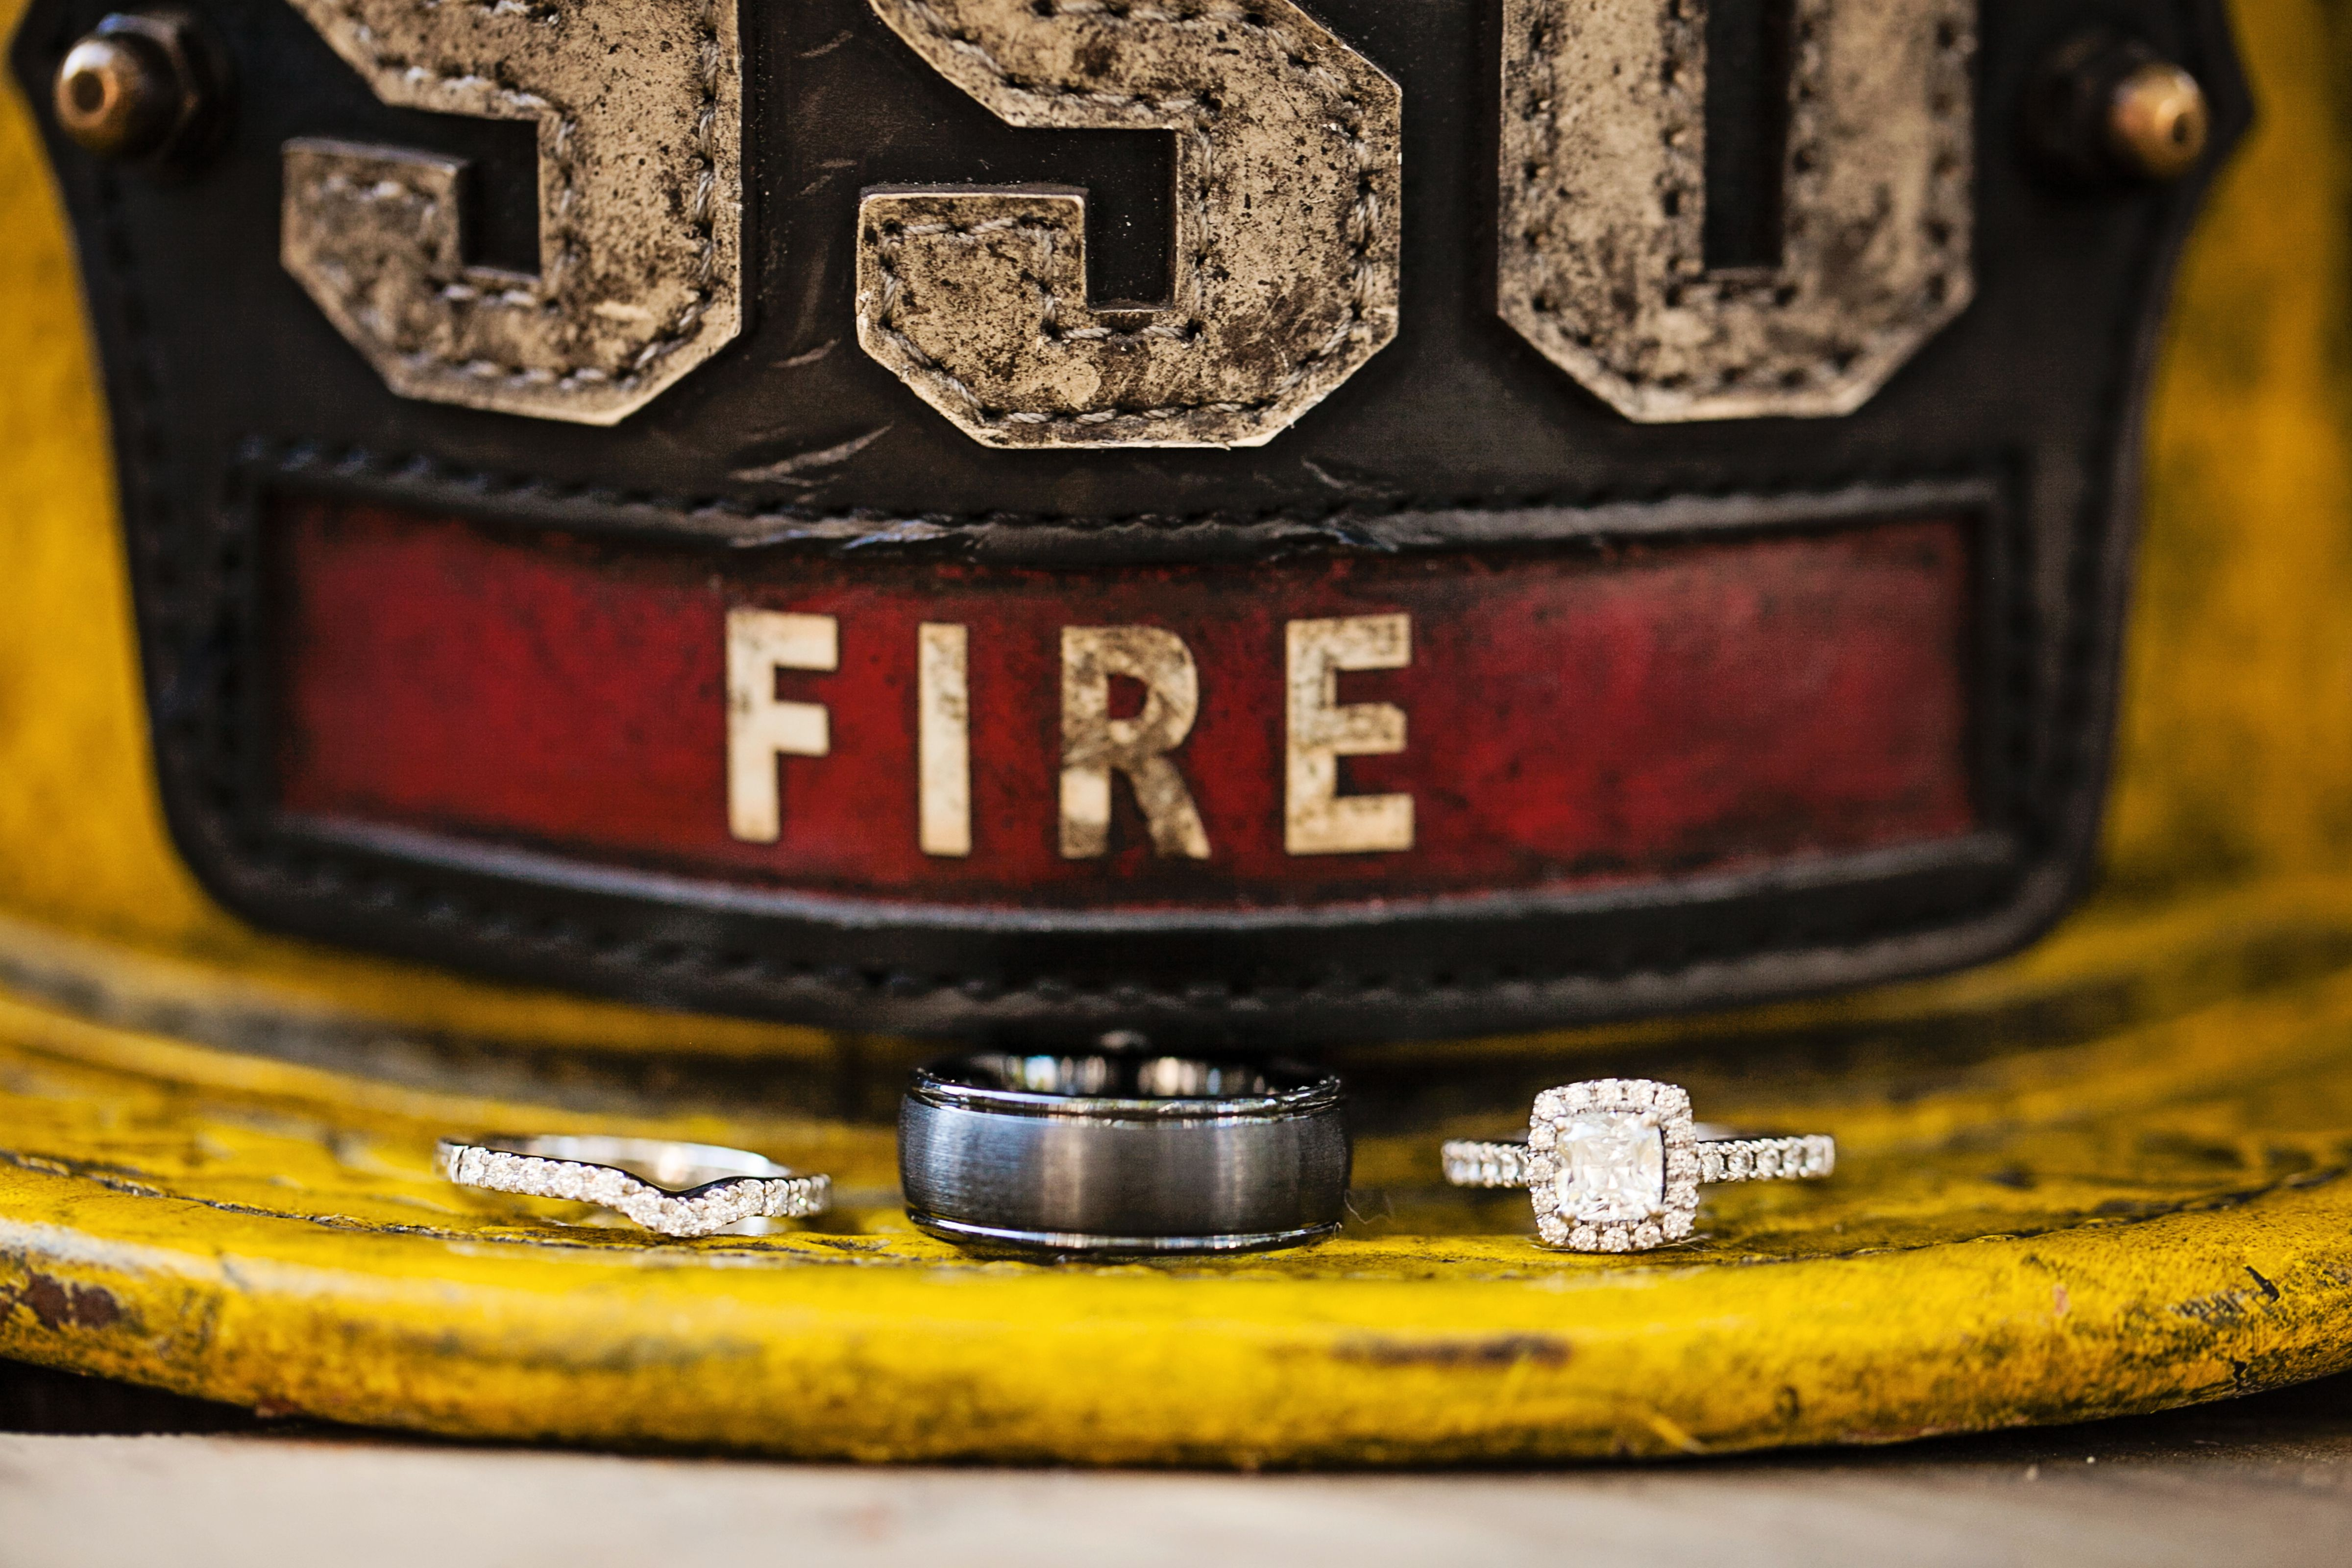 Firefighter Helmet Ring Shot Firefighter Wedding Photo By Macon  Photography